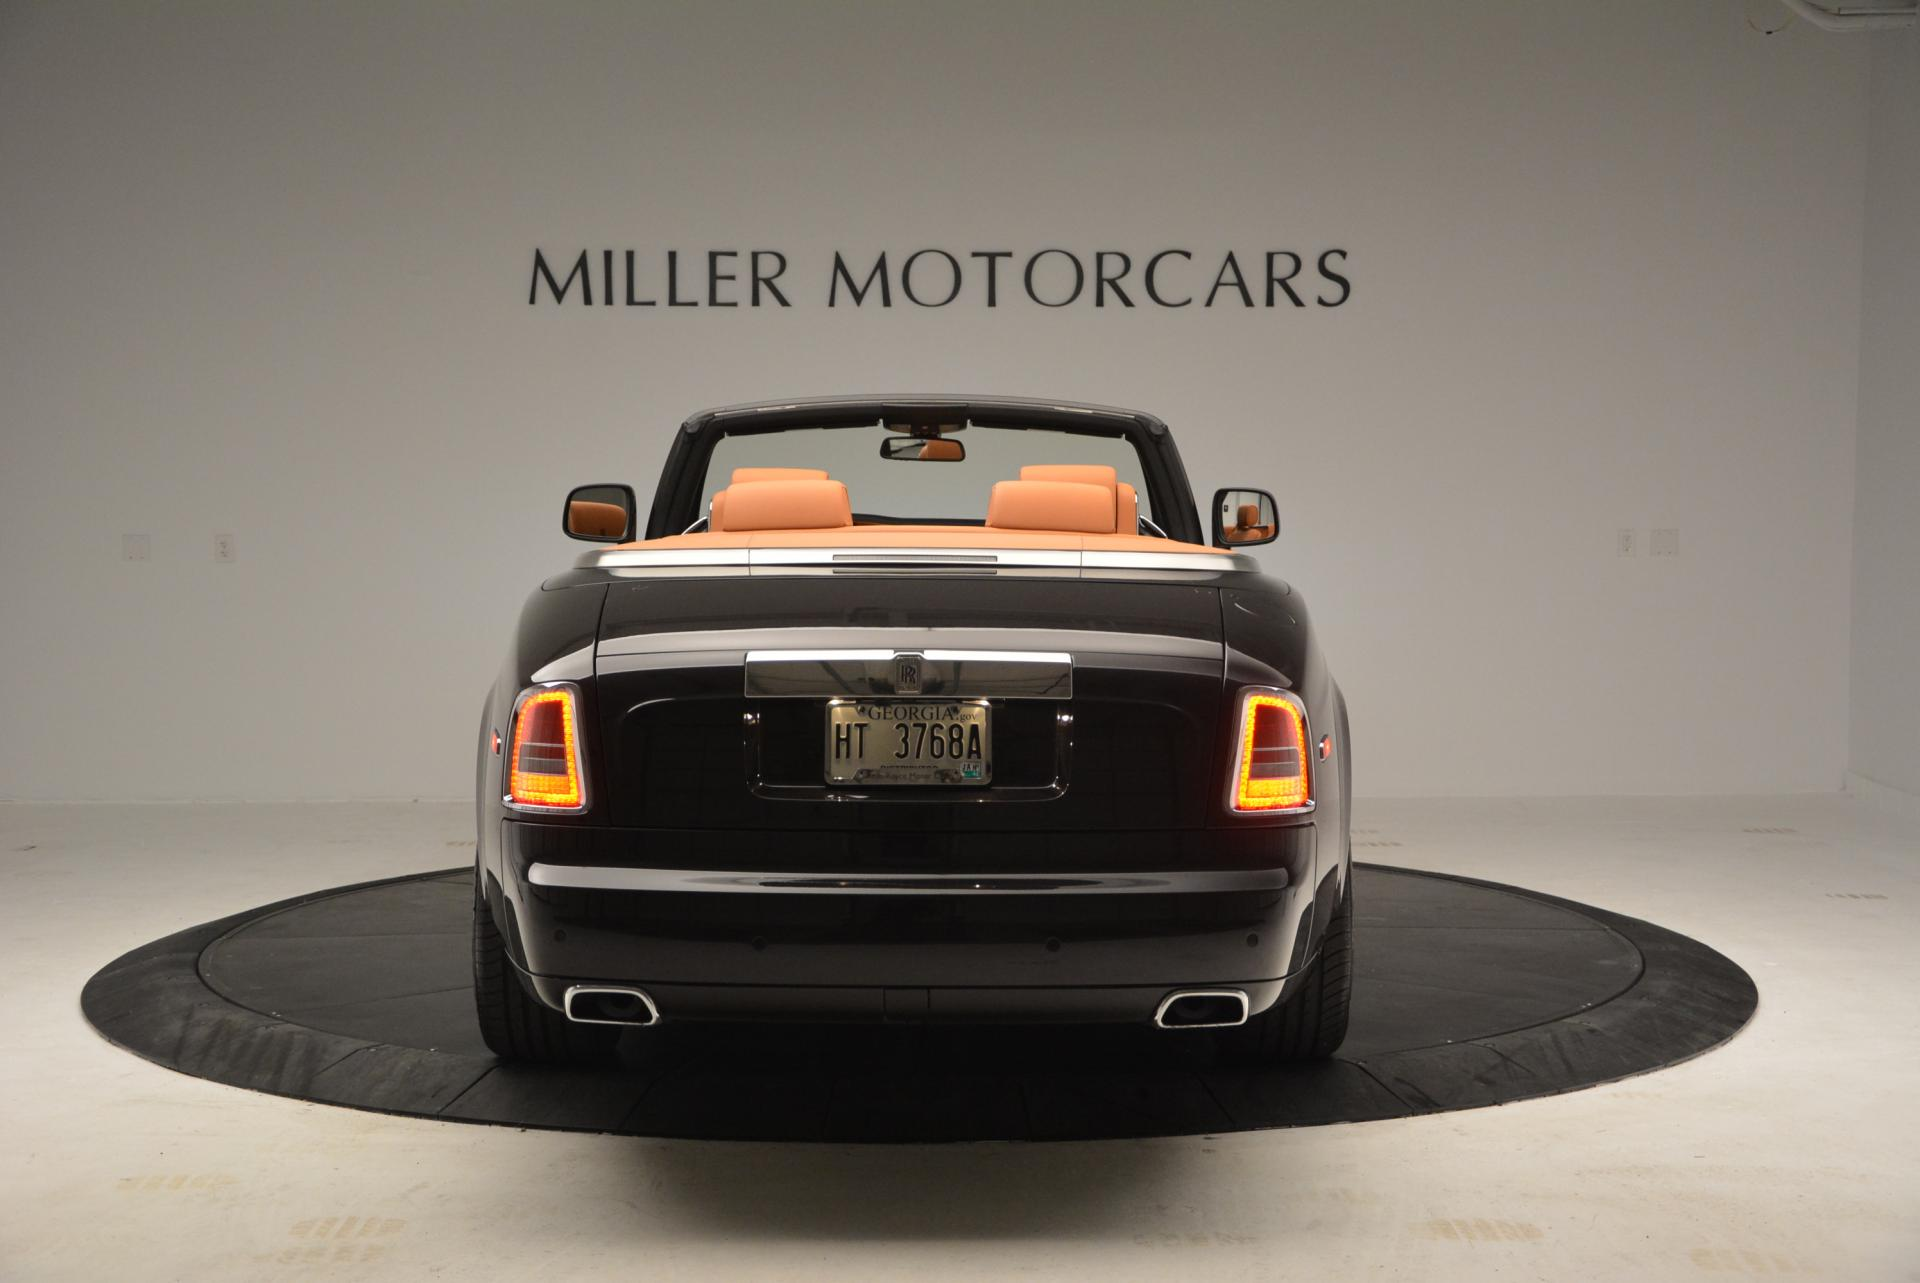 New 2016 Rolls-Royce Phantom Drophead Coupe Bespoke For Sale In Greenwich, CT 208_p6